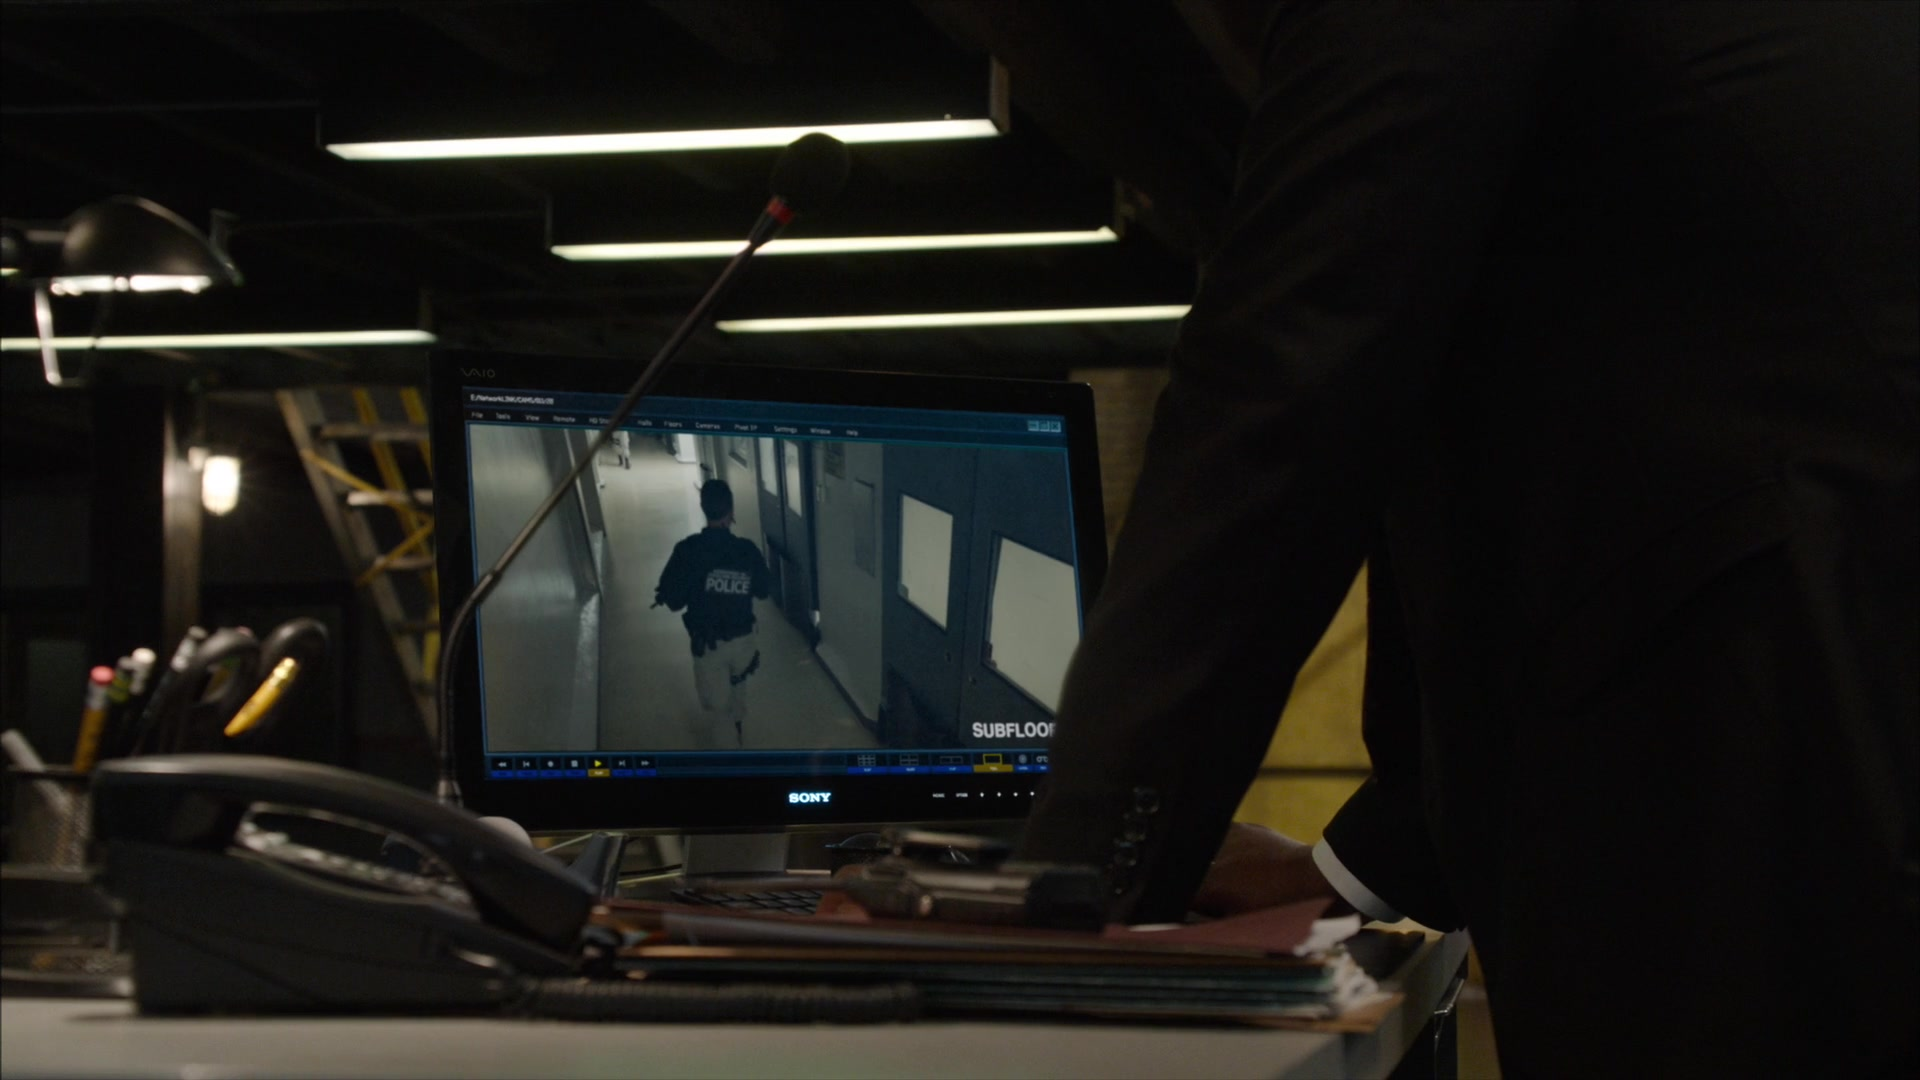 Sony Vaio All-In-One Computer Used by Harry Lennix in The Blacklist